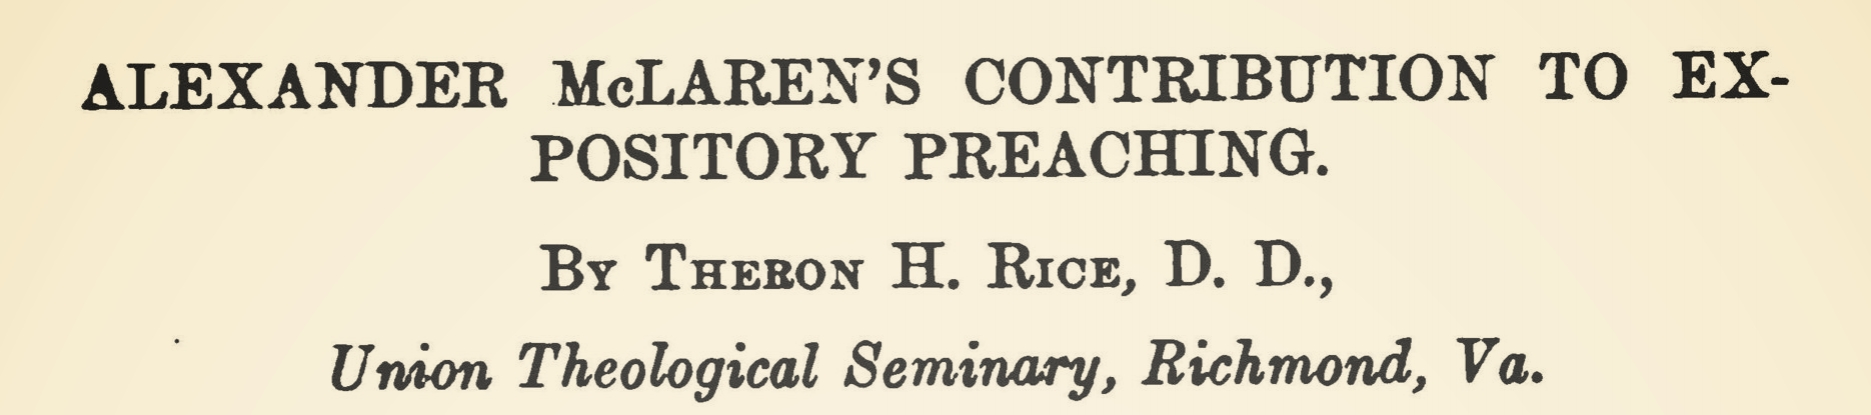 Rice, Jr., Theron Hall, Alexander McLaren's Contribution to Expository Preaching Title Page.jpg